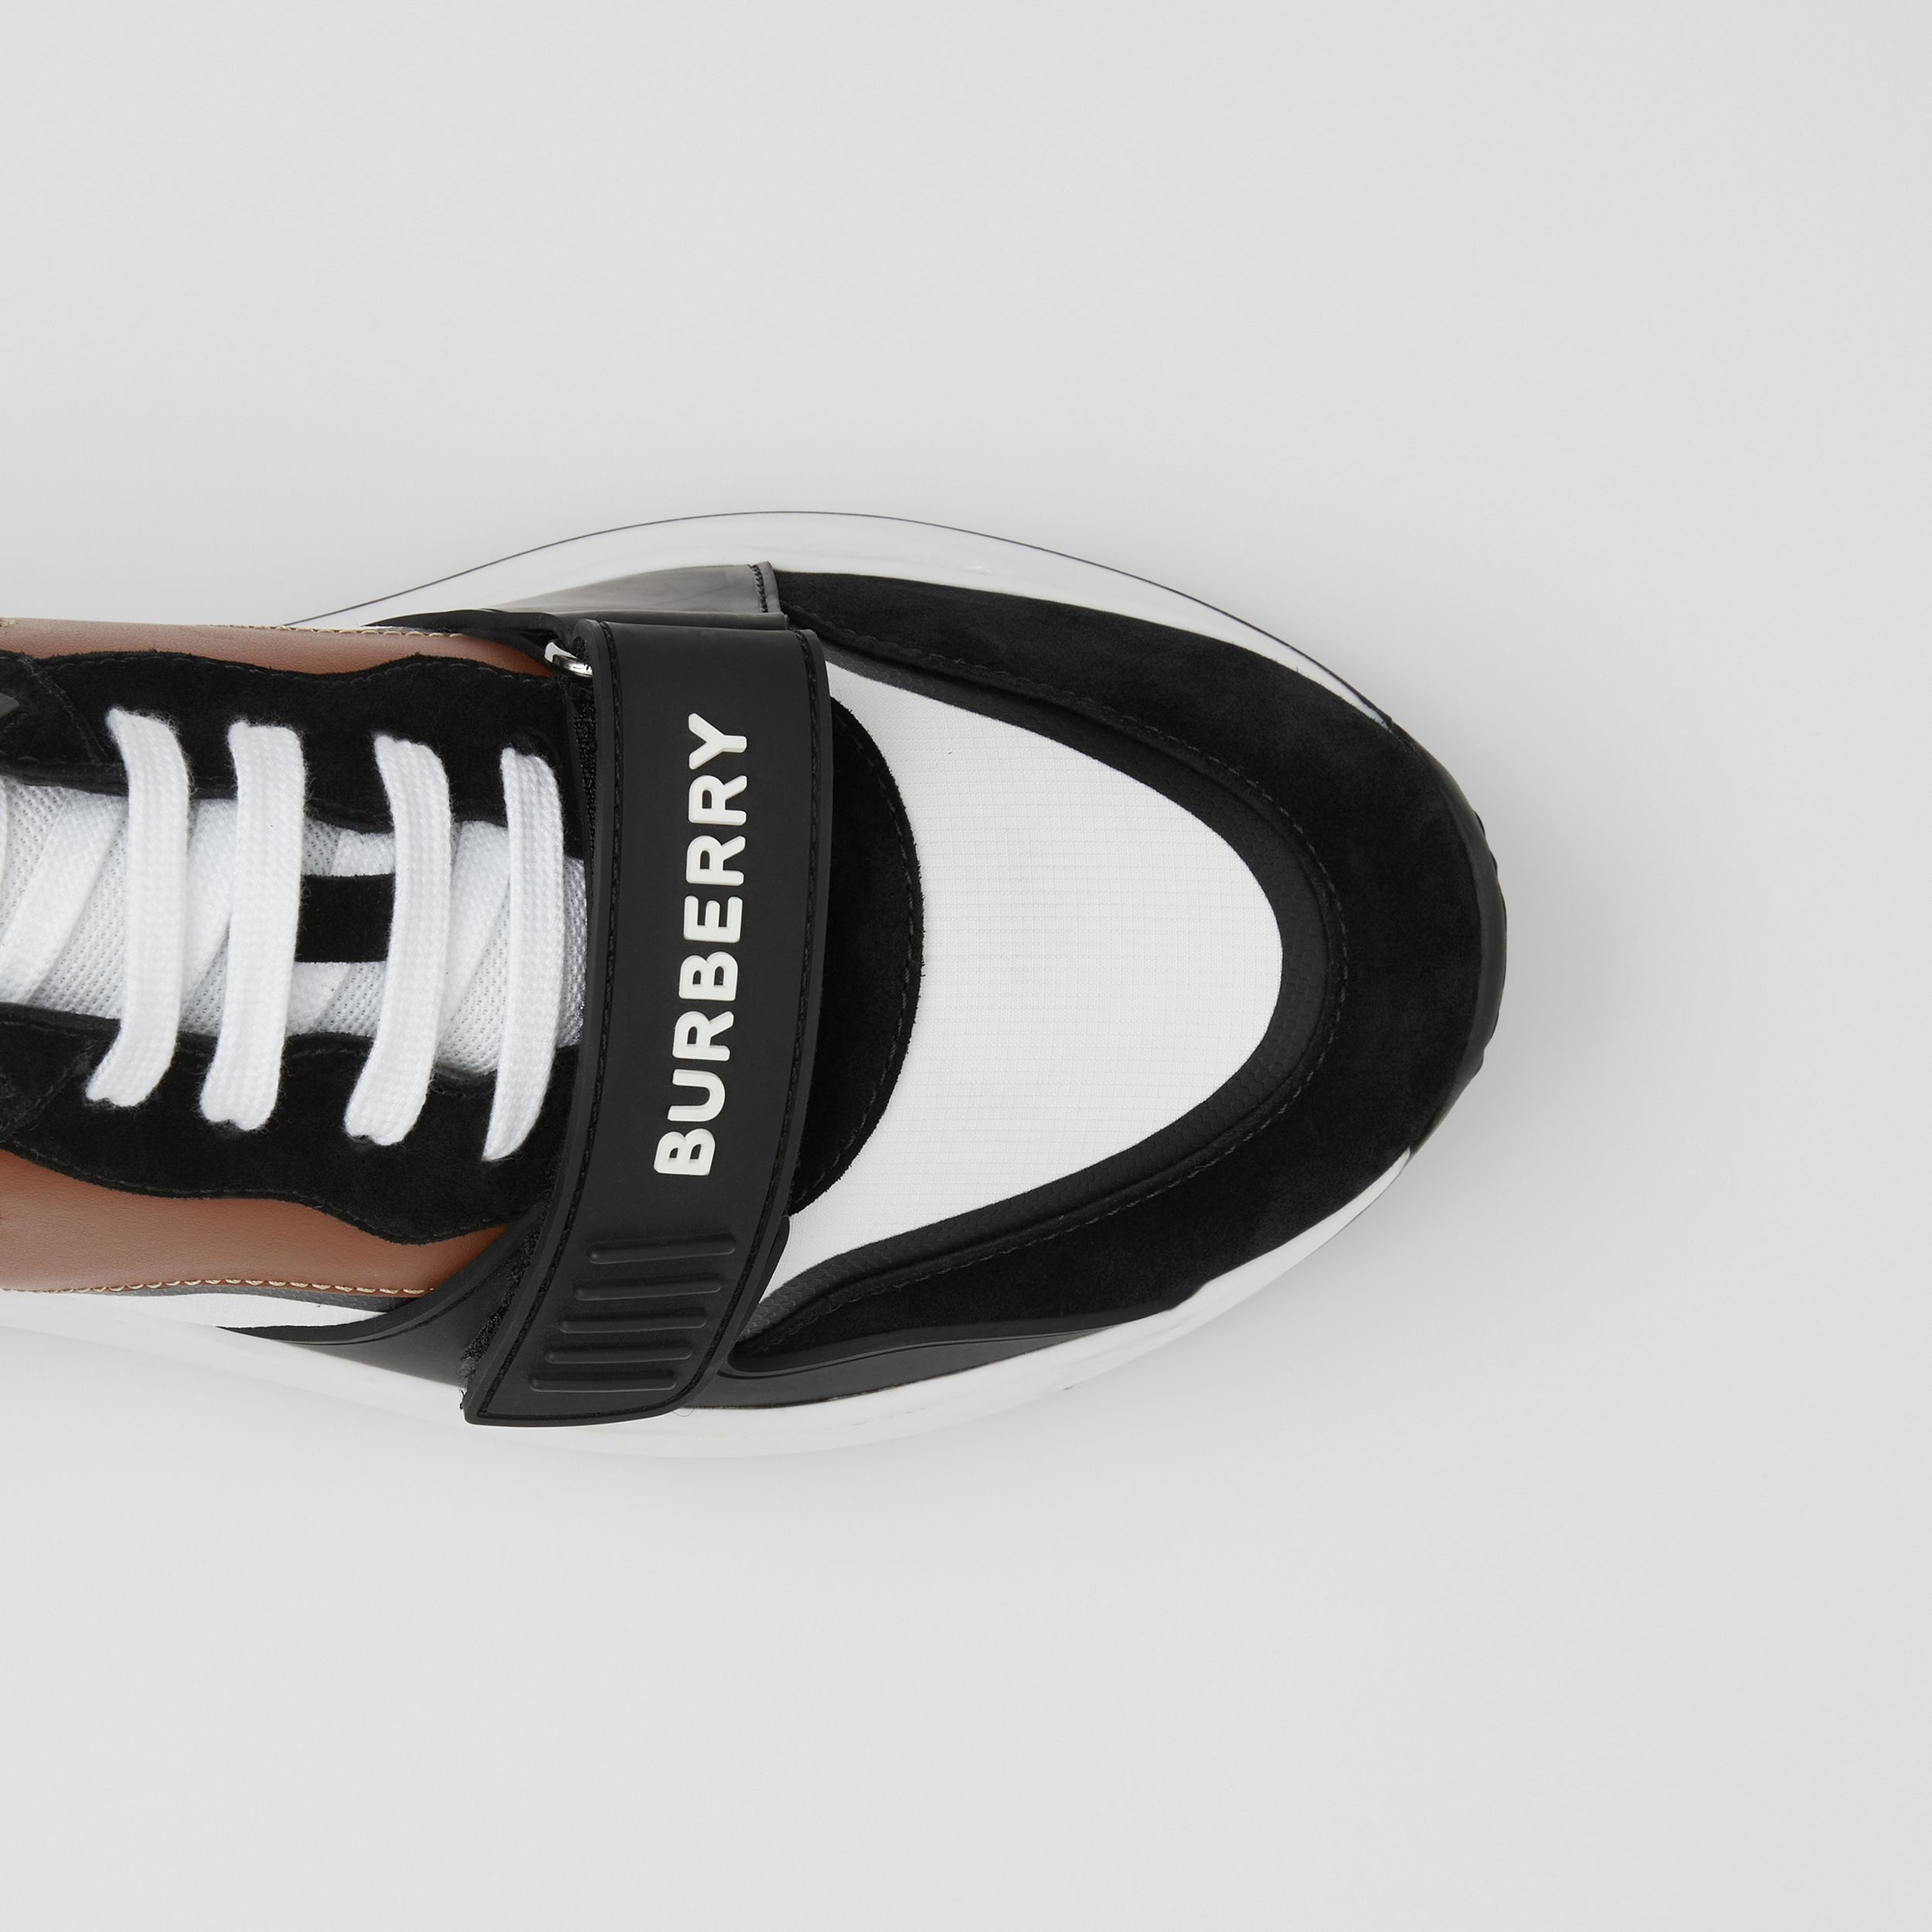 Leather, Suede and Vintage Check Sneakers in Black/archive Beige - Women | Burberry United States - 2